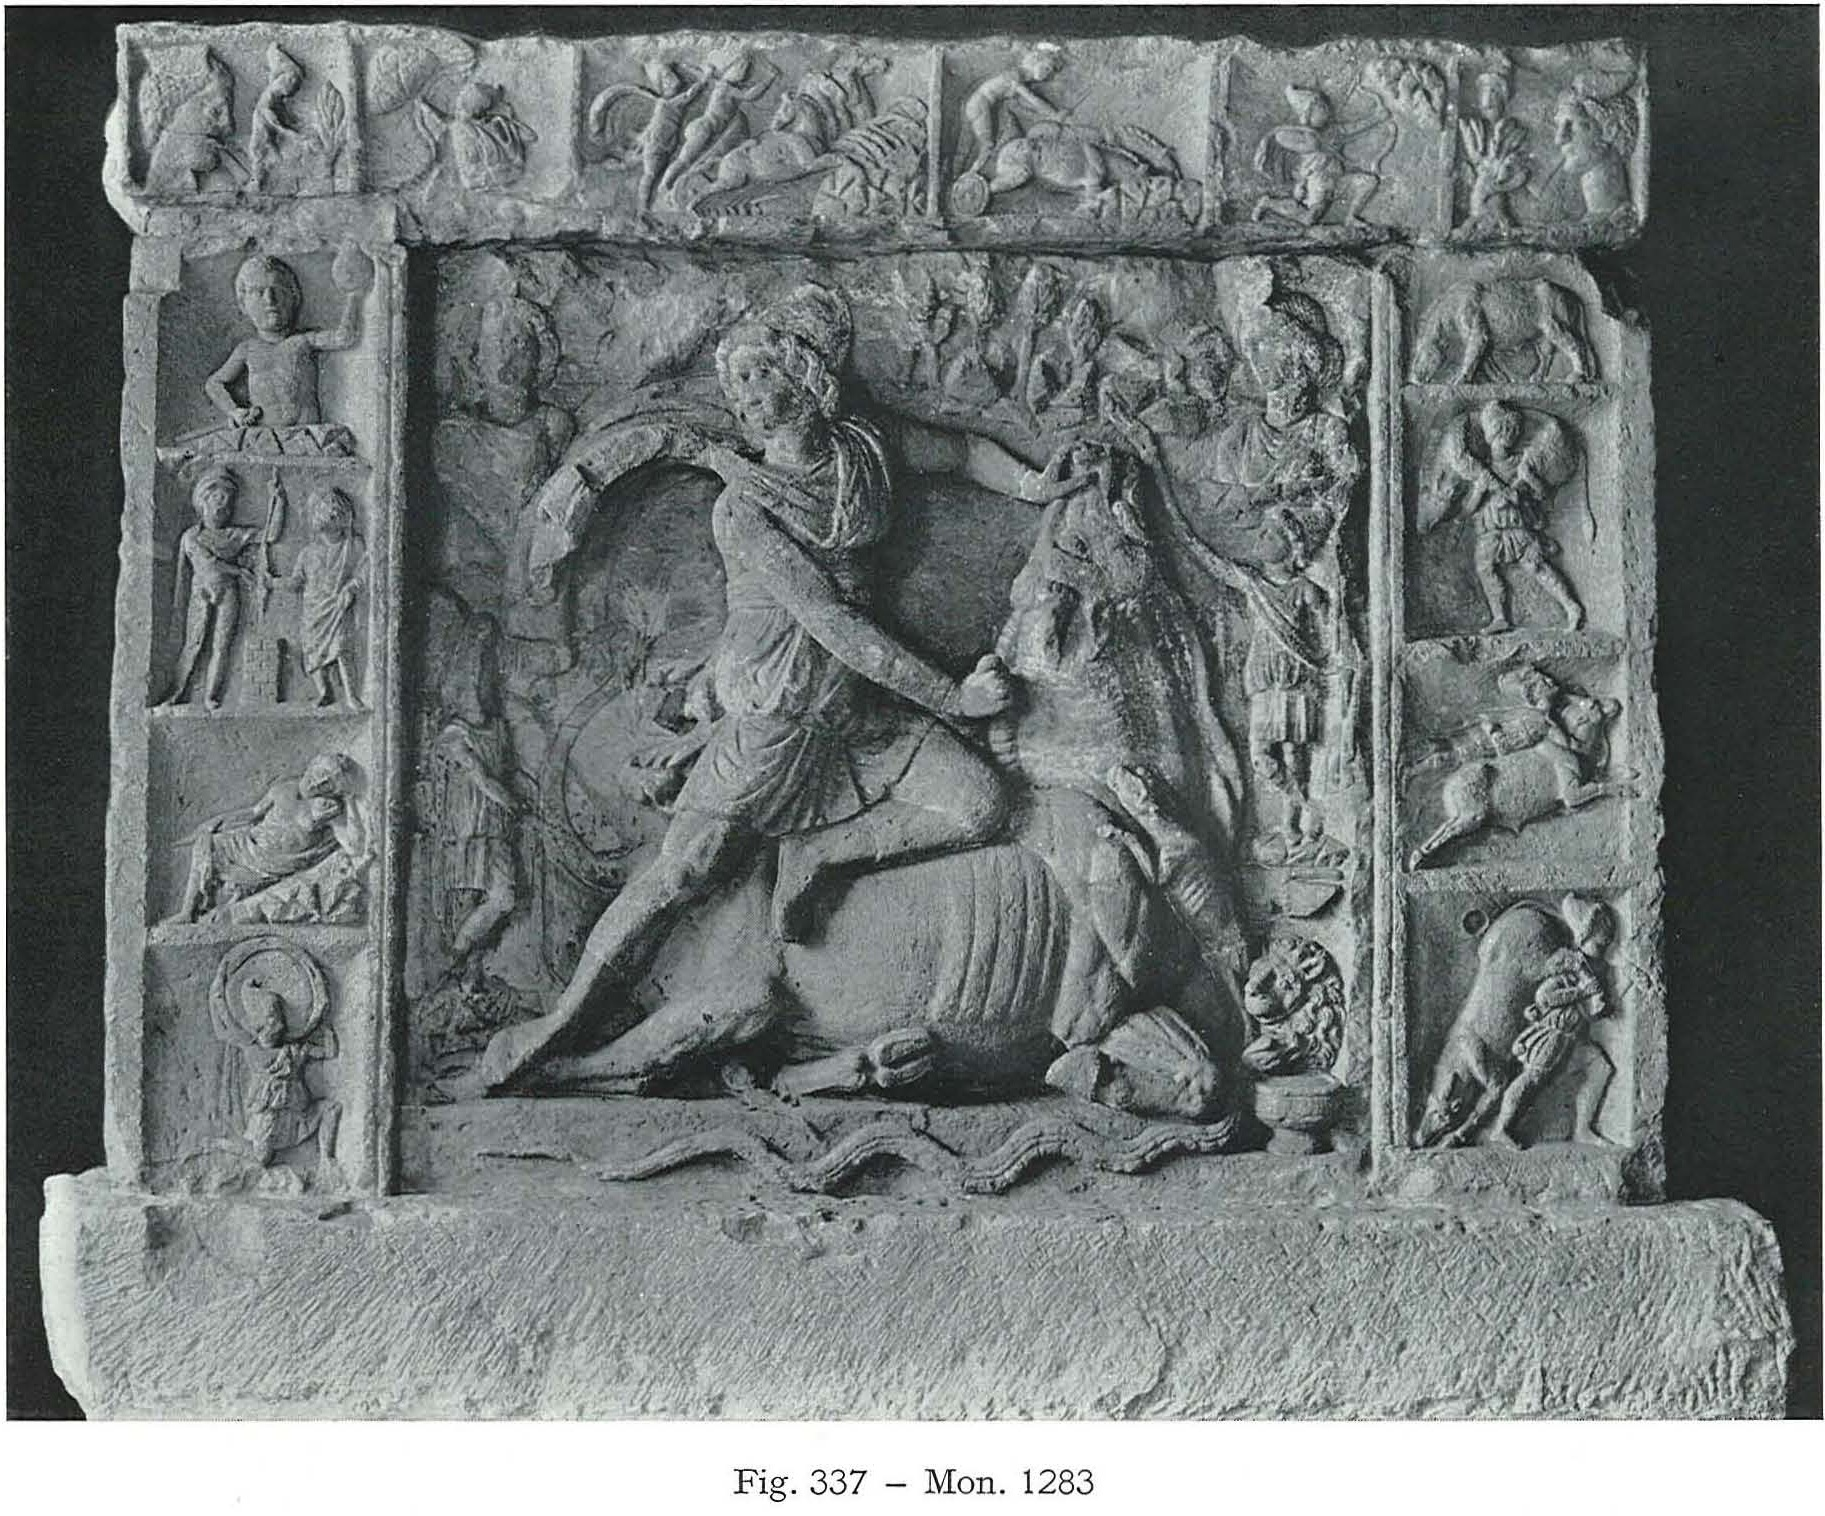 d3bc91060 http   www.tertullian.org rpearse mithras images cimrm1283 cimrm fig337.jpg